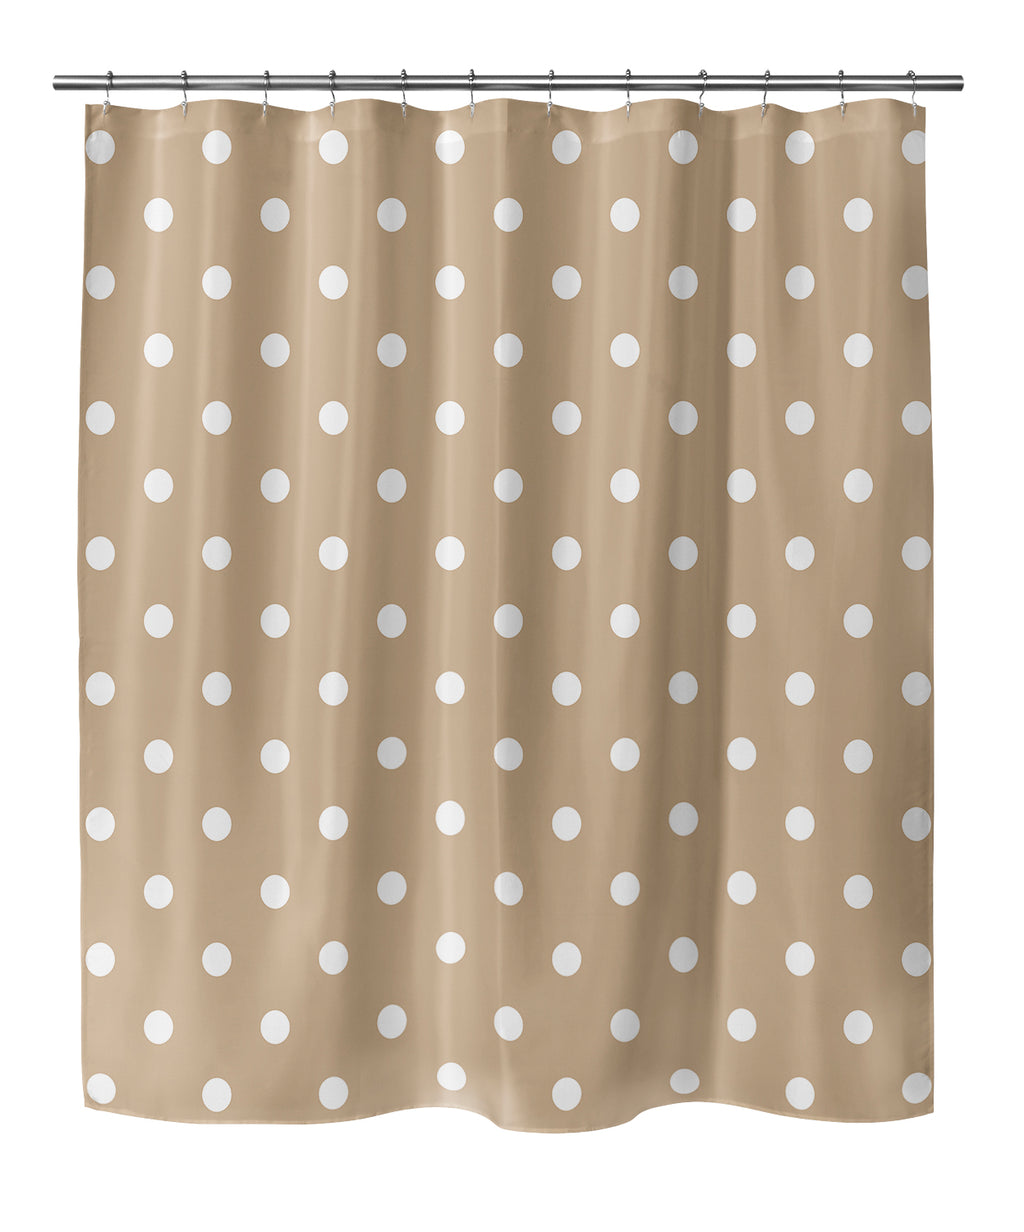 POLKA DOTS TAN Shower Curtain By Terri Ellis